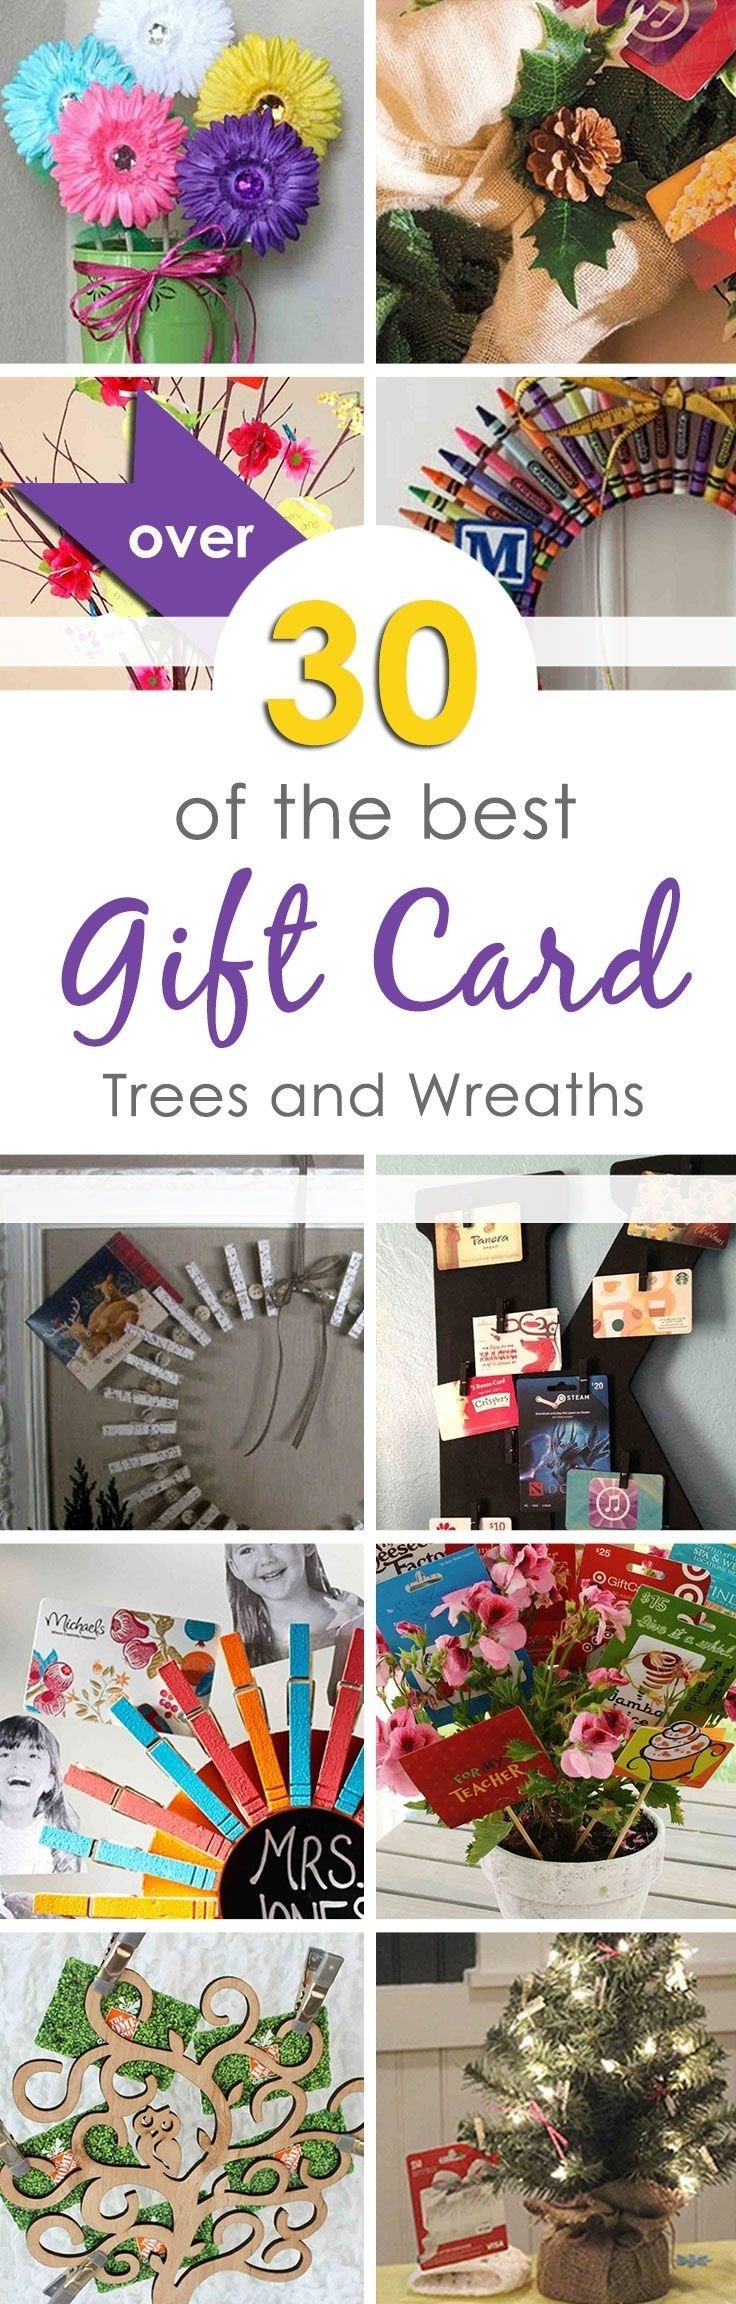 10 Stunning Ideas For Giving Gift Cards 139 best gift card trees and gift card wreaths images on pinterest 2020